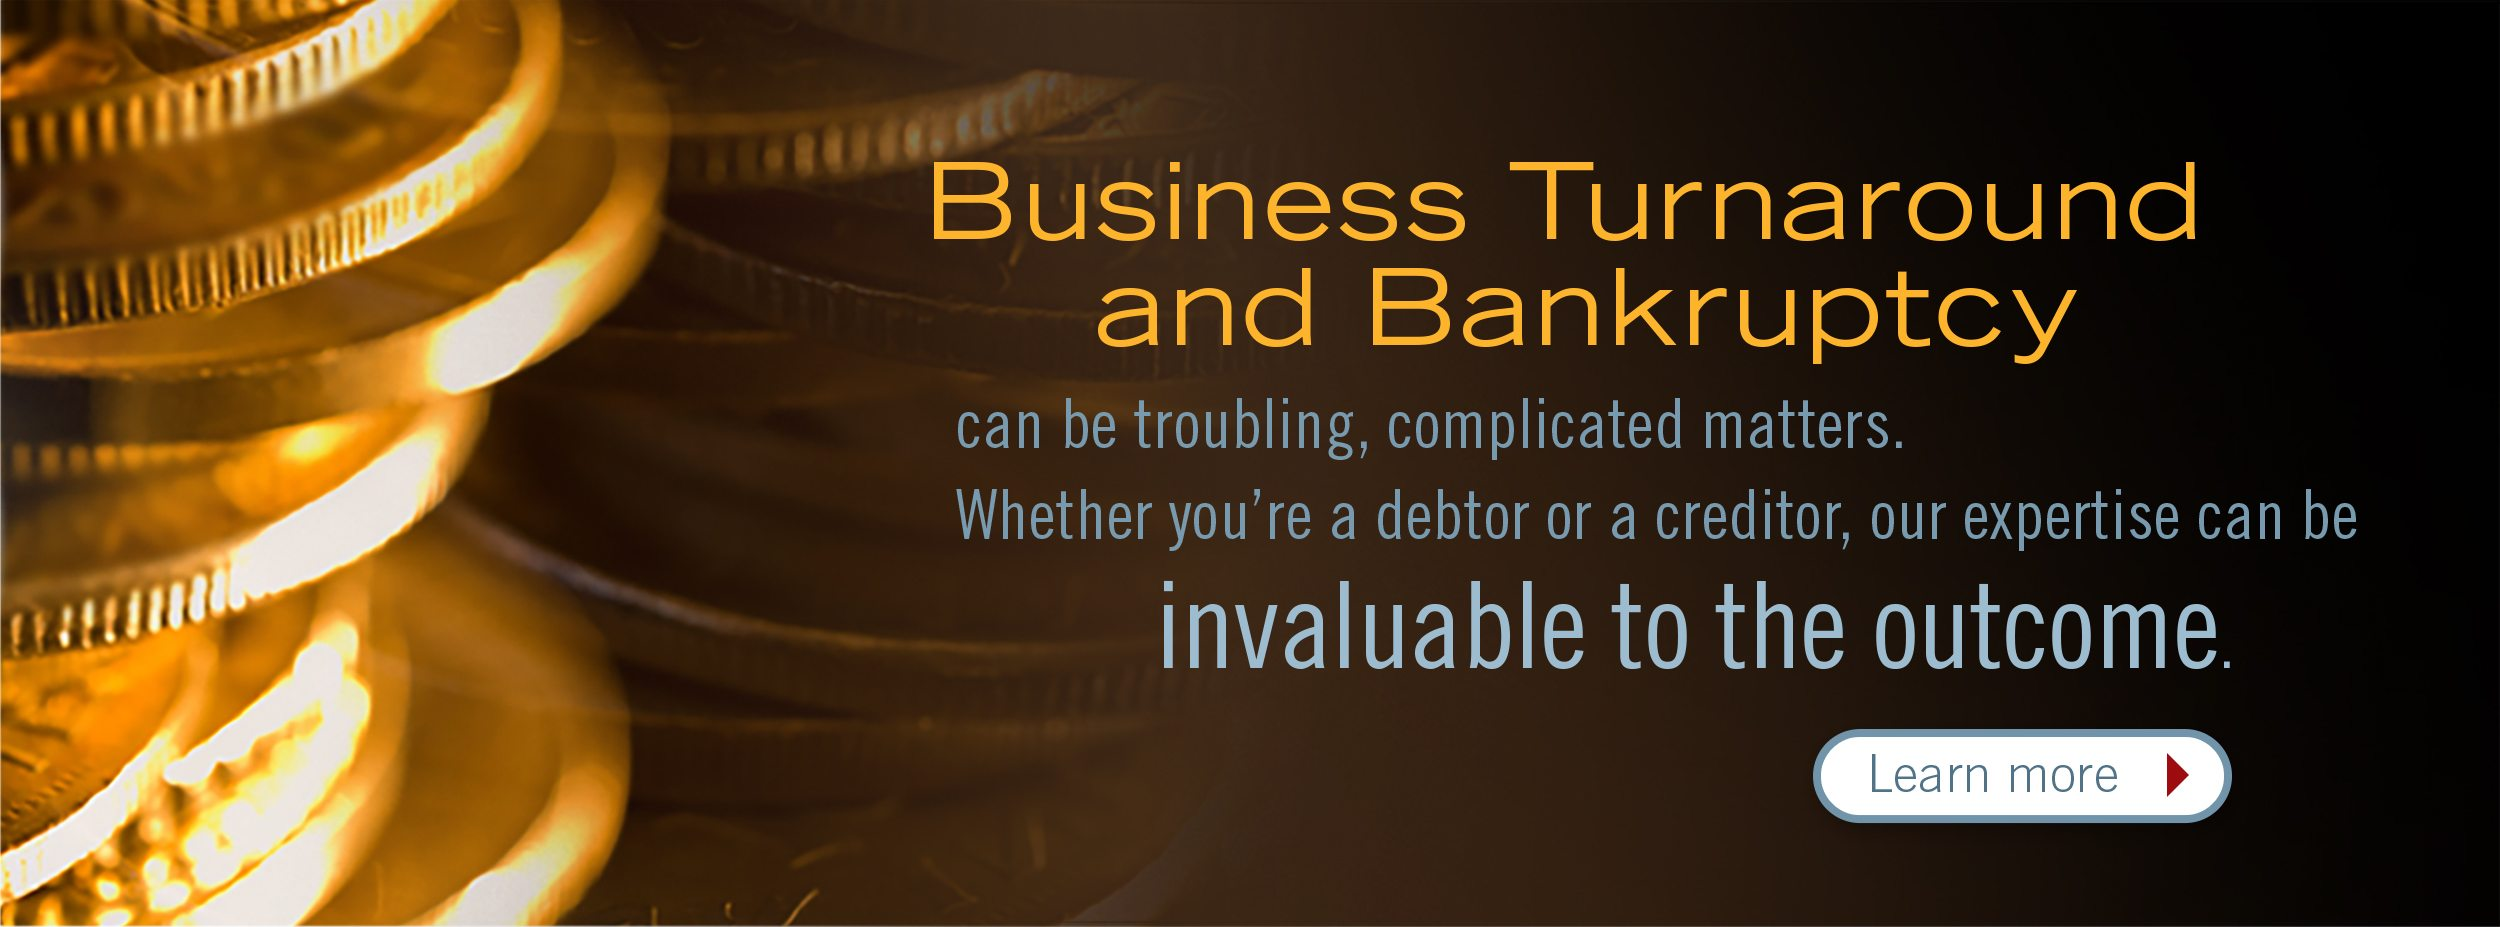 business turnaround and bankruptcy can be troubling complicated maters